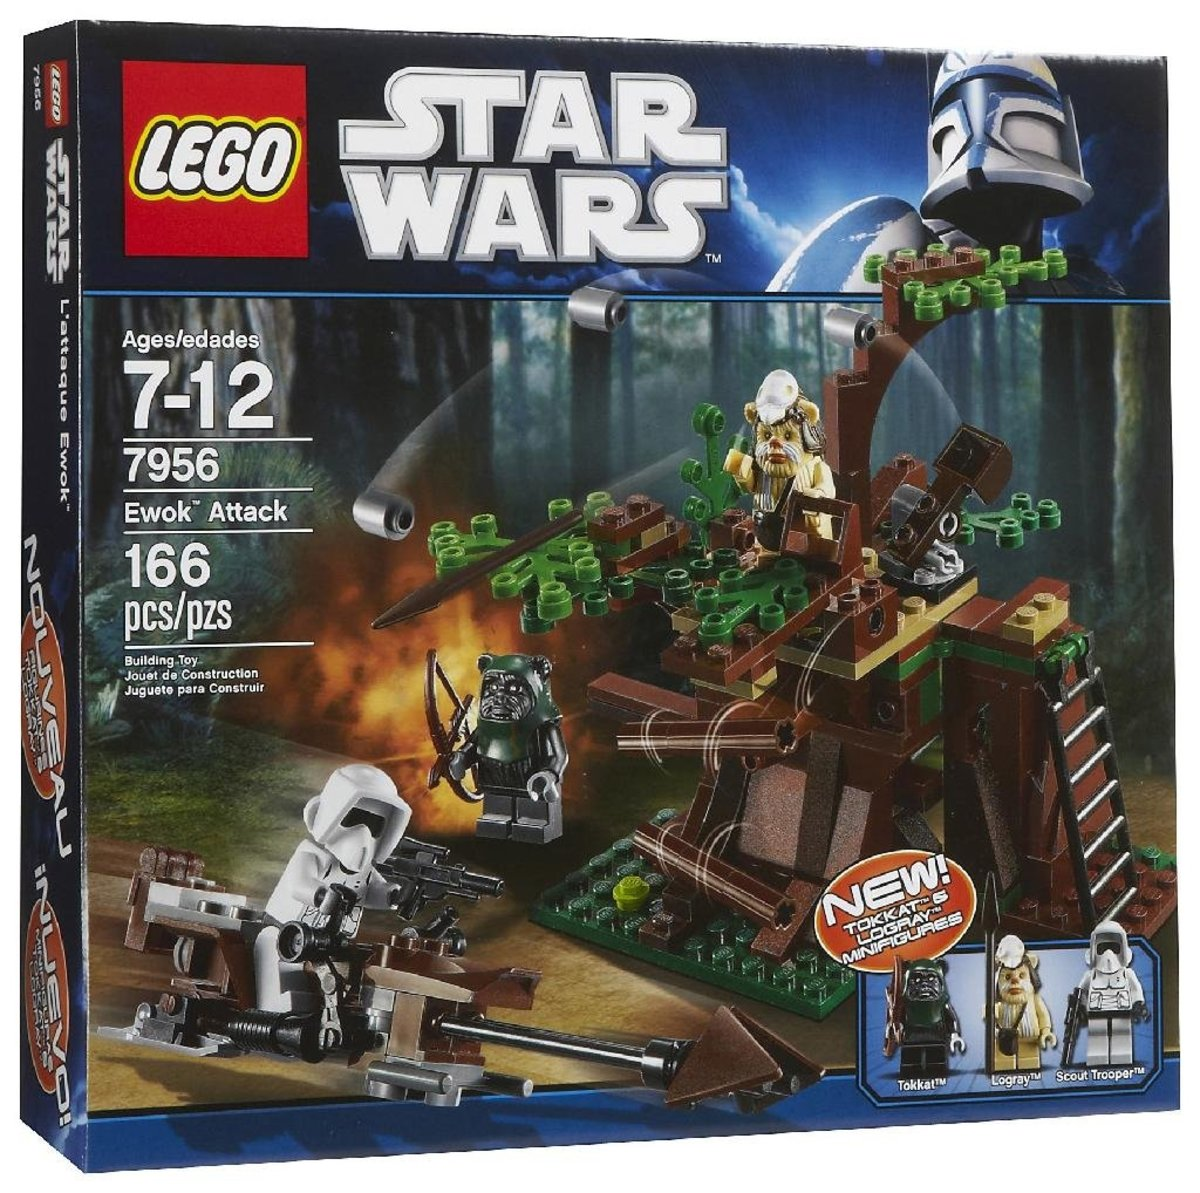 LEGO Star Wars Ewok Attack 7956 Box